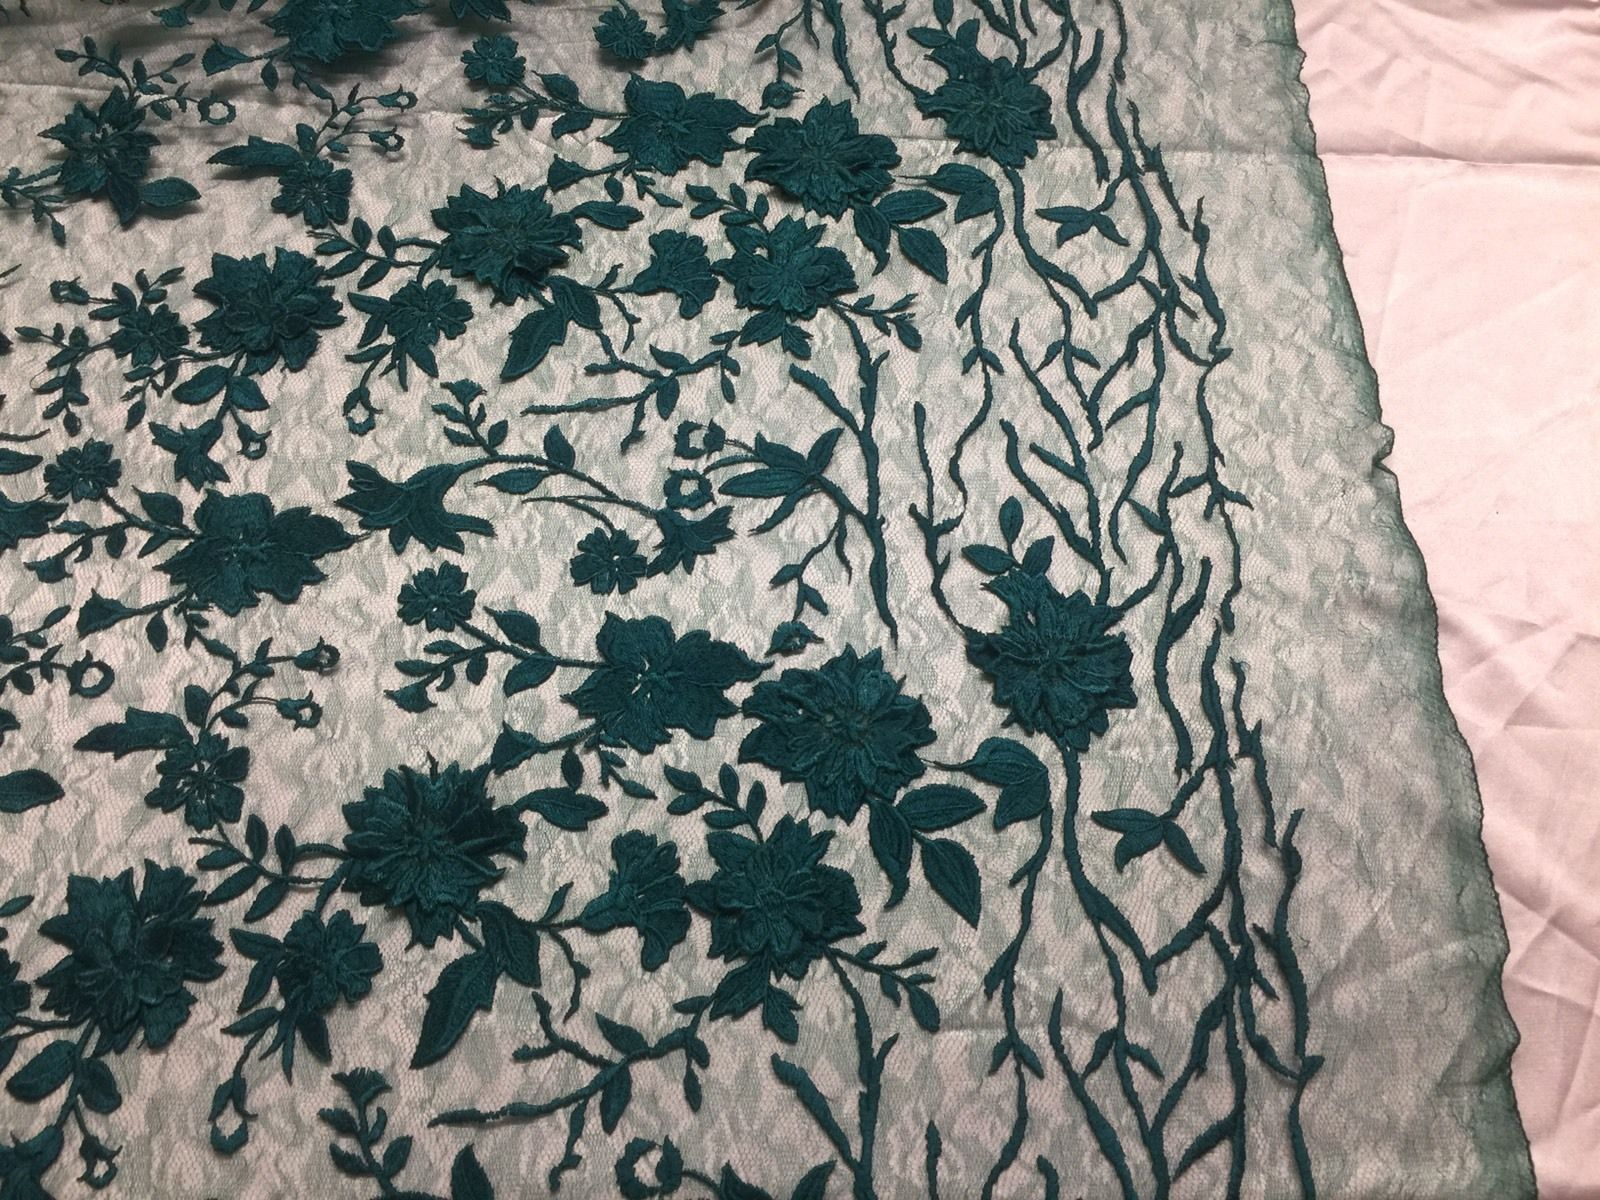 Flower Fabric - Mesh Net Type Spider 3D Flowers Green For Dress By The Yard - KINGDOM OF FABRICS